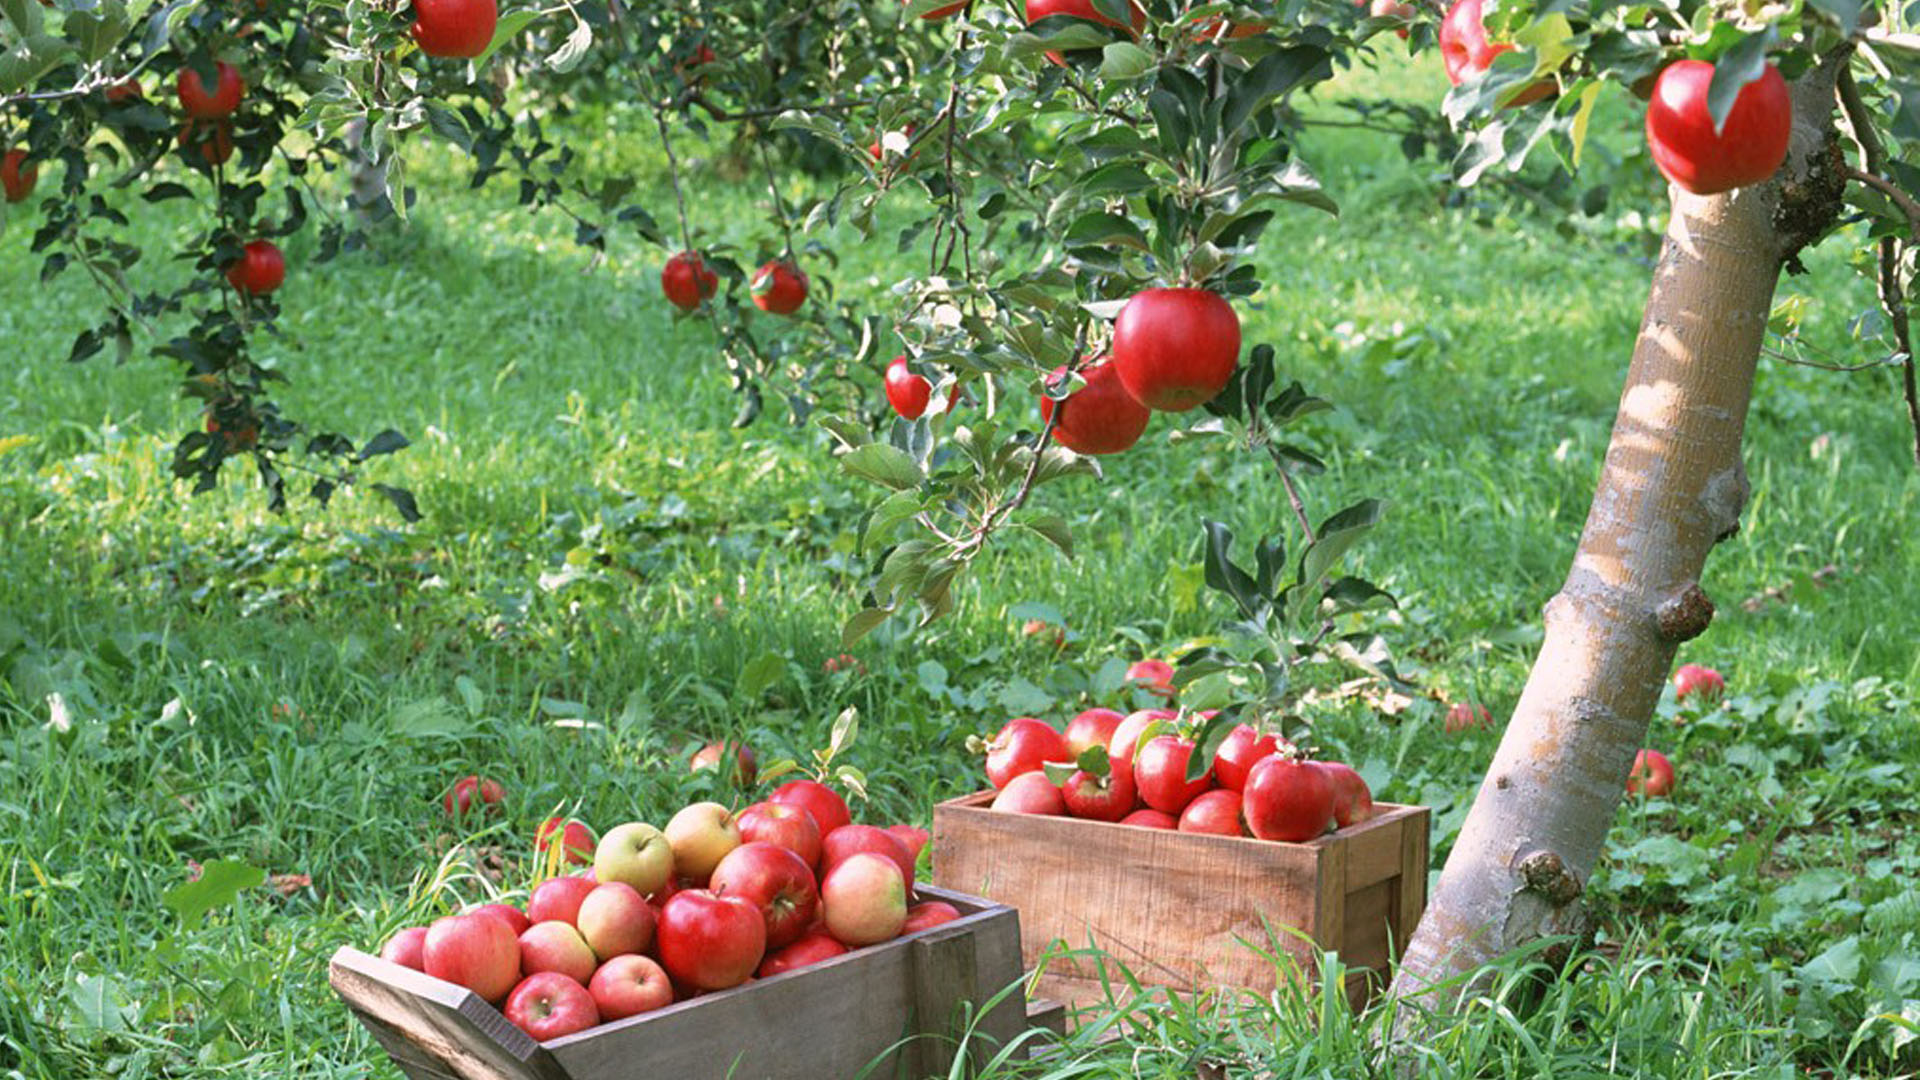 Apple tree high quality new wide hd wallpaper